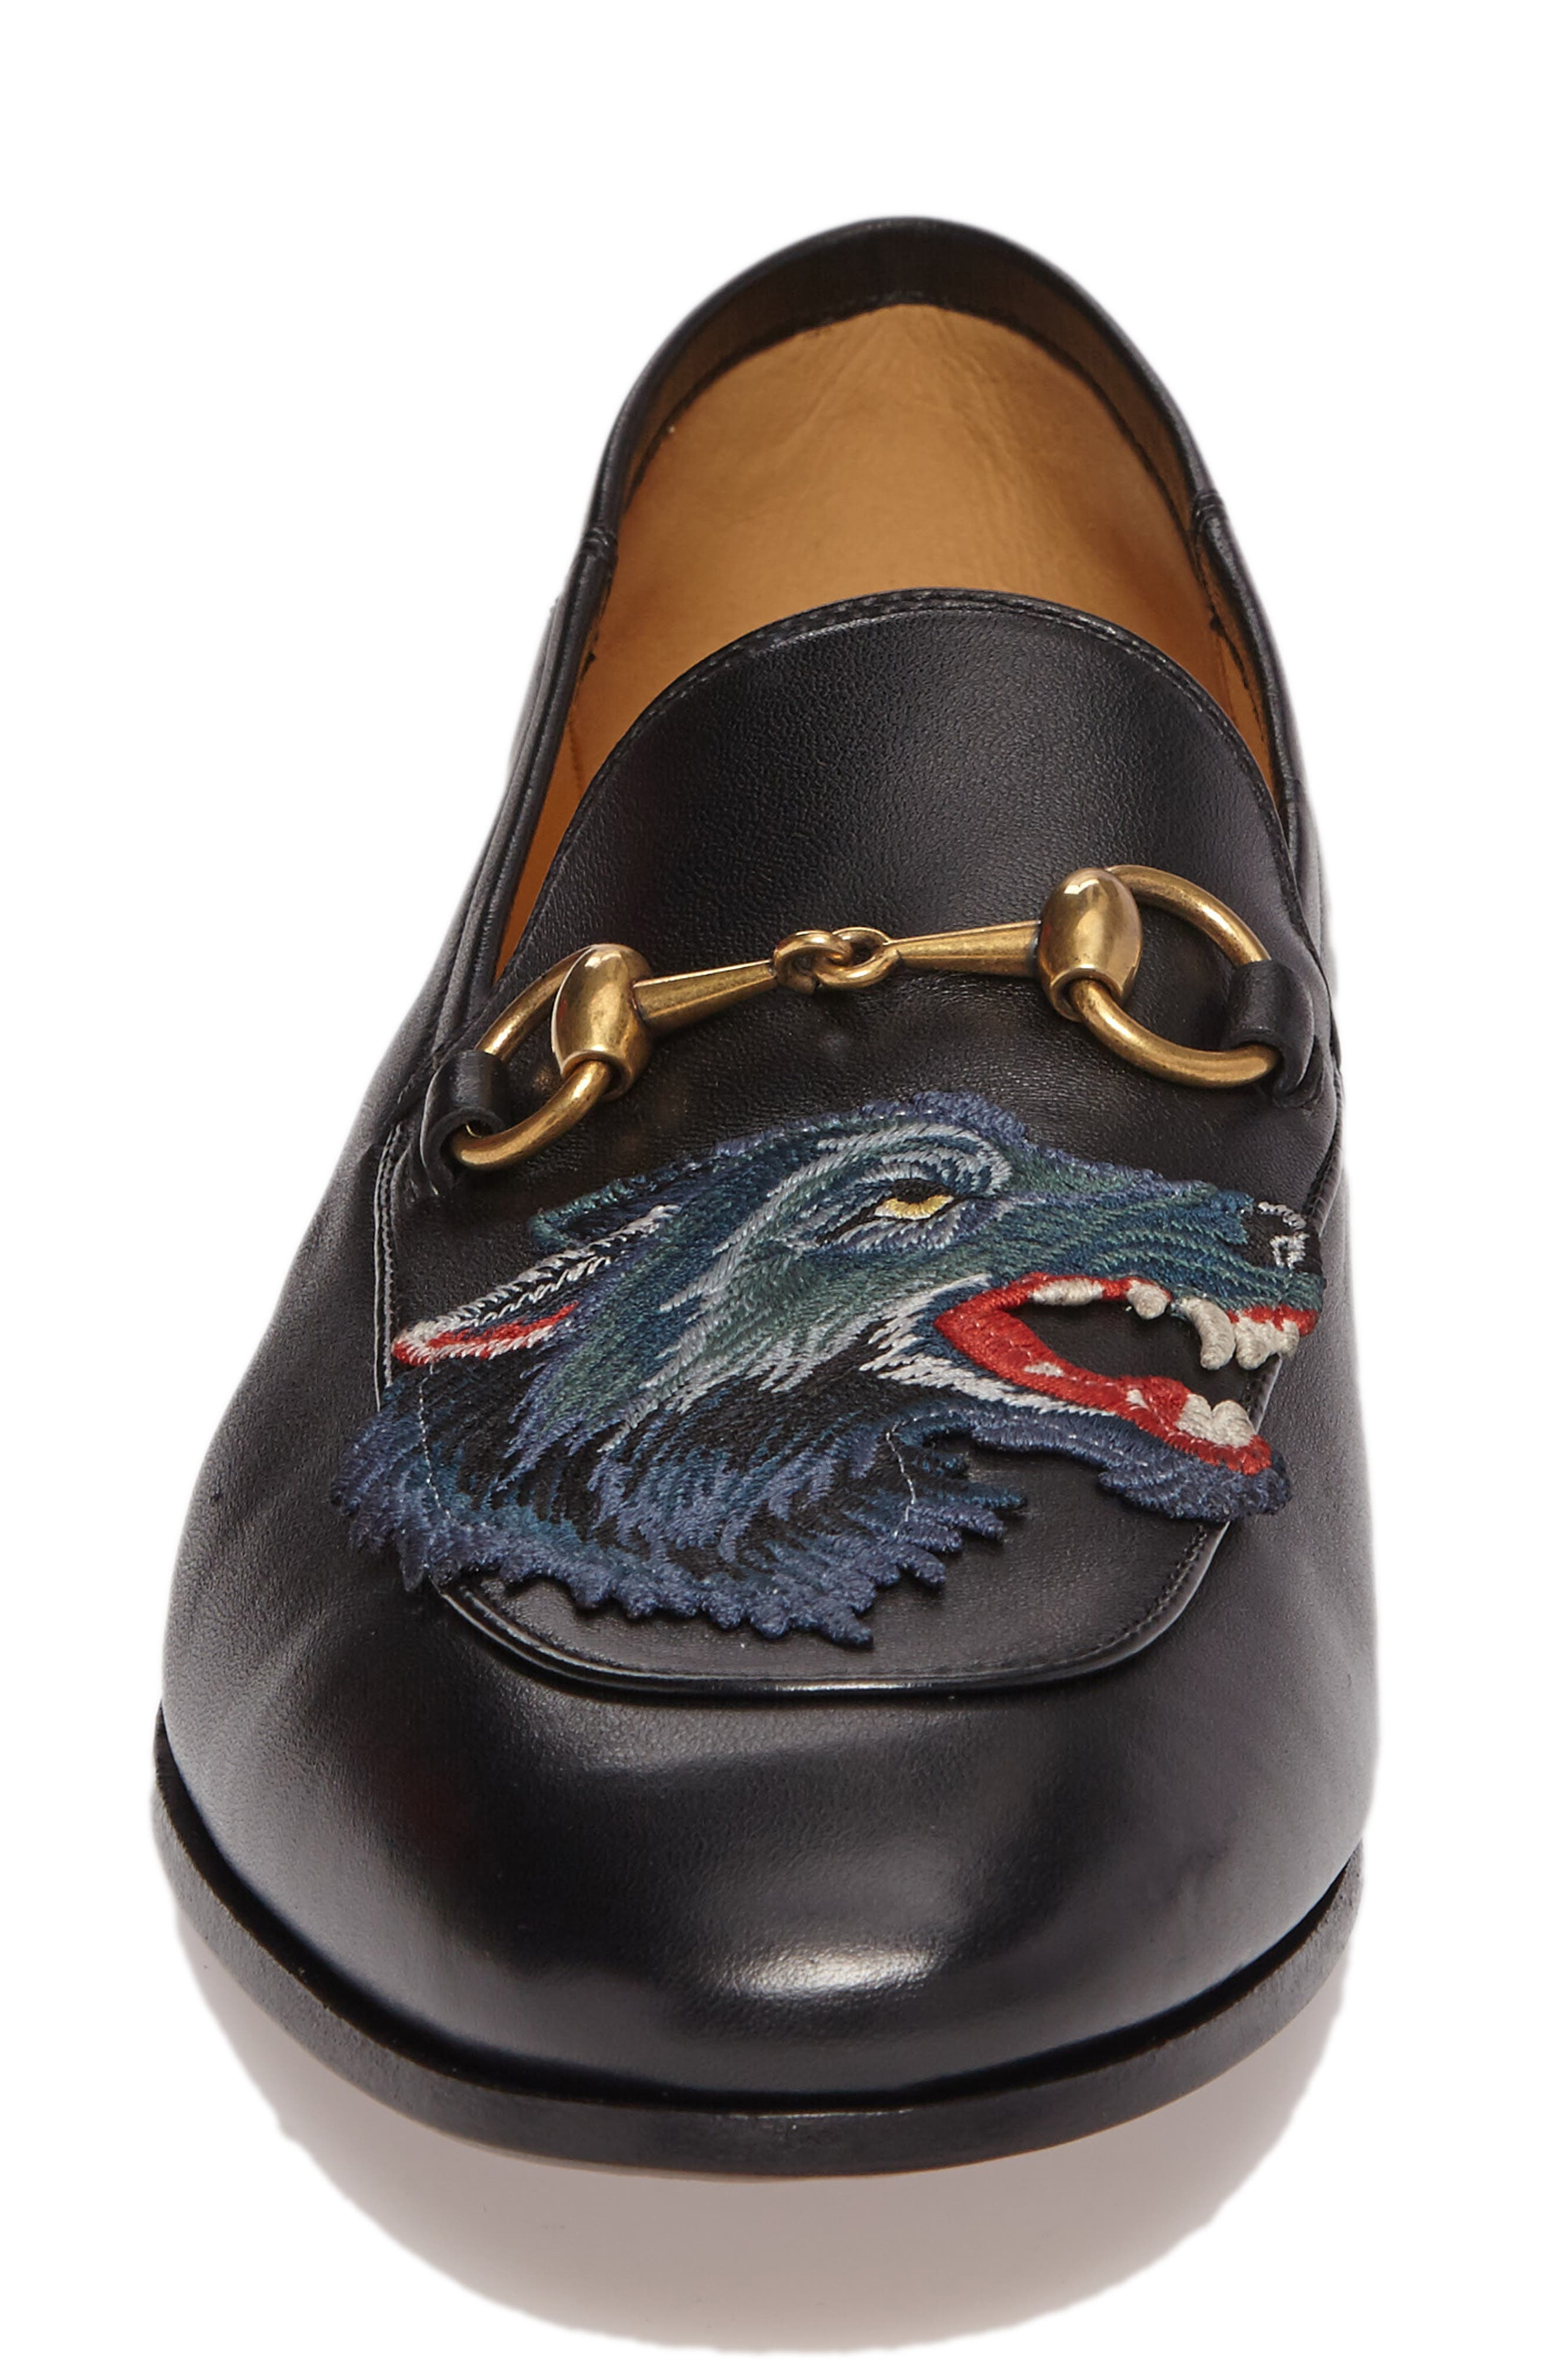 Wolf Leather Loafer,                             Alternate thumbnail 4, color,                             Black/ Blue